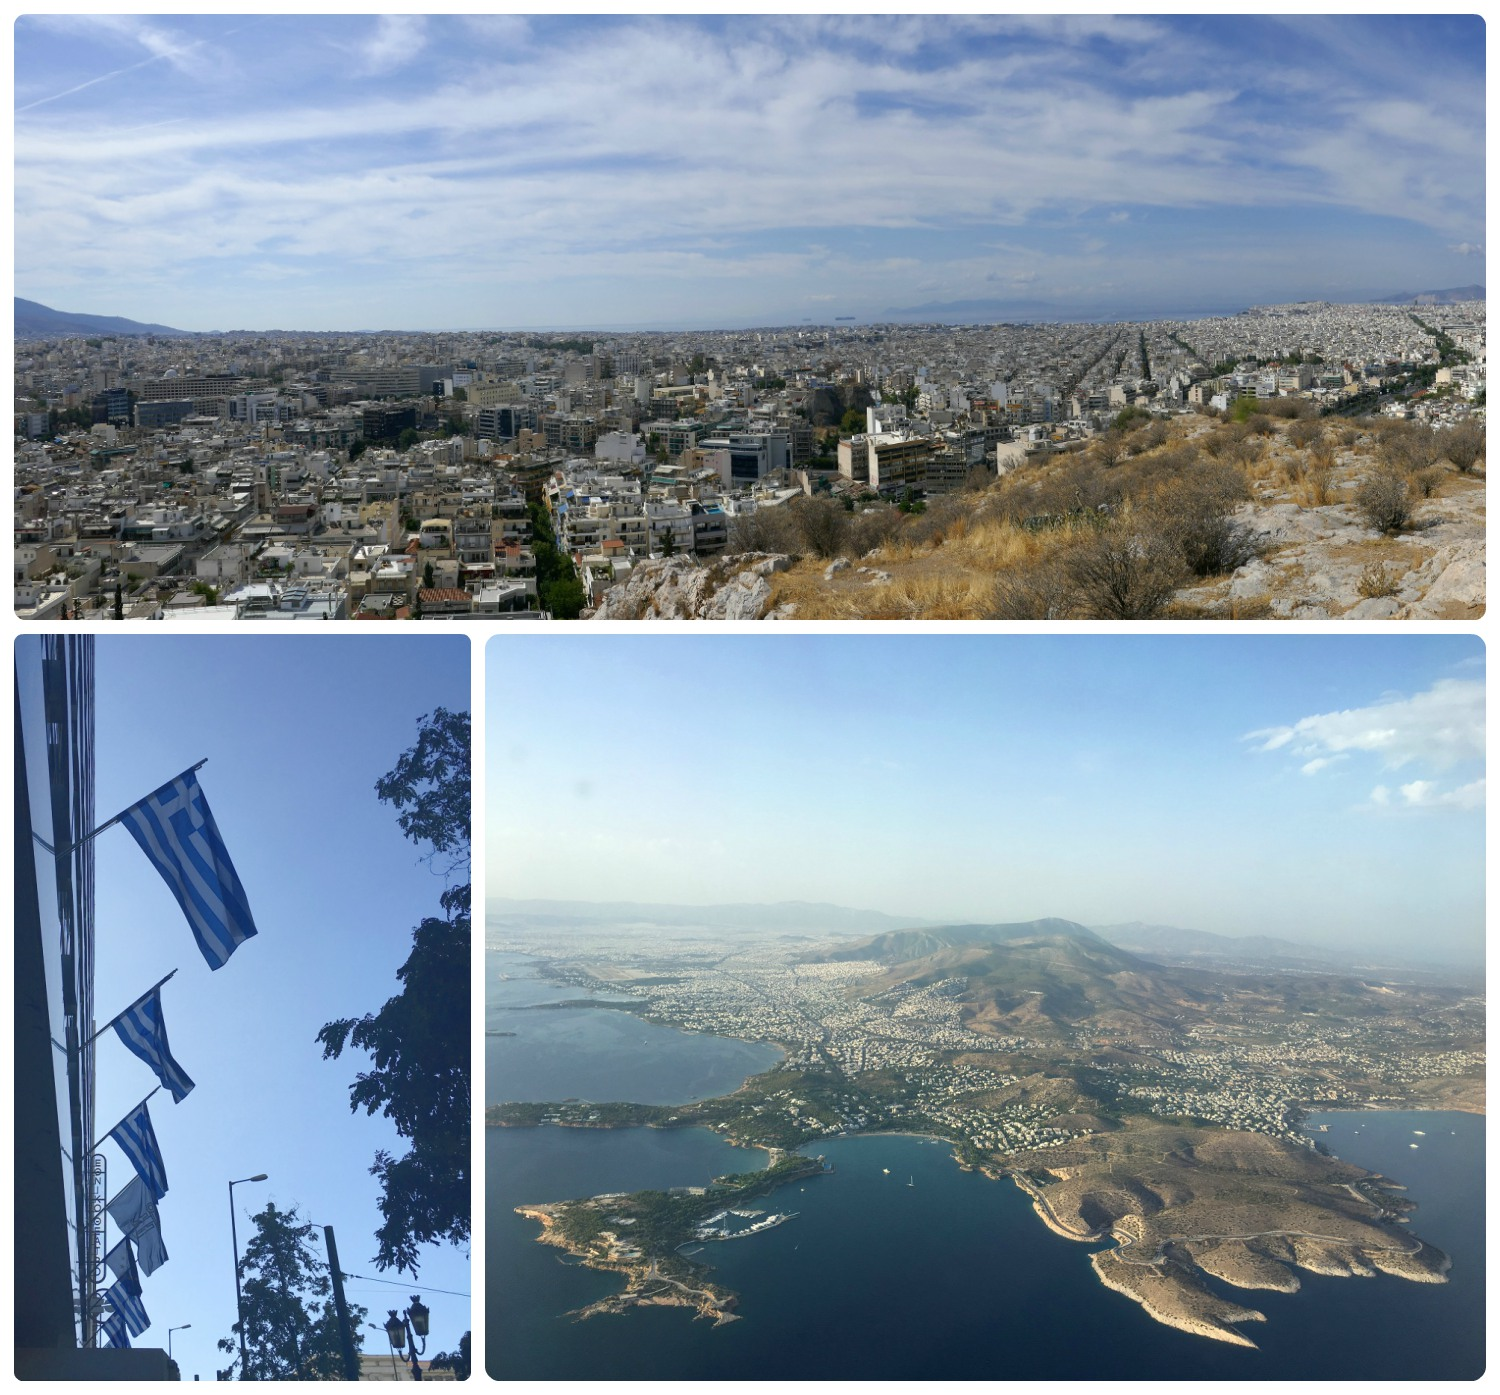 We were excited to see Greece from the air as our plane approached! Once one the ground, the views of the city were just as spectacular!